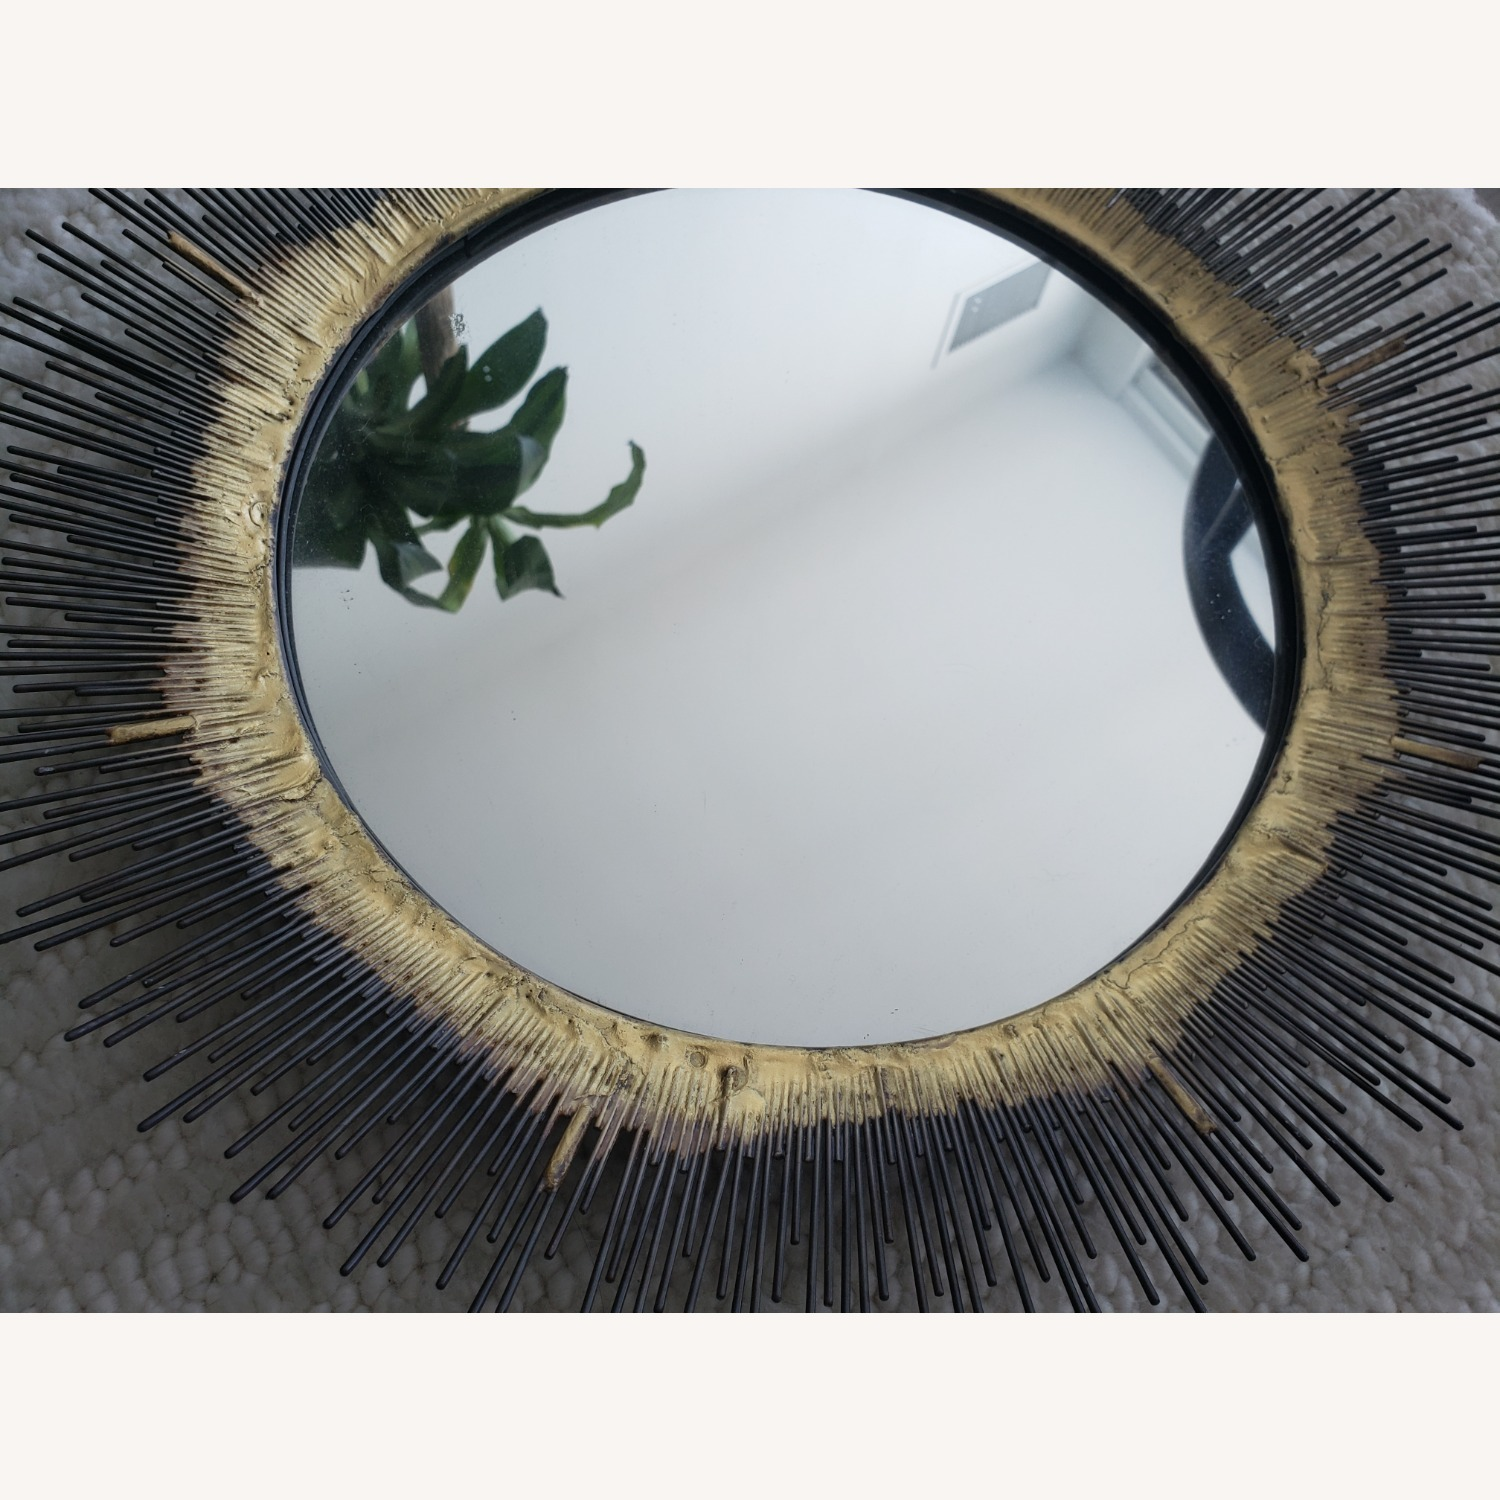 Crate and Barrel Brass Round Wall Mirror - image-2